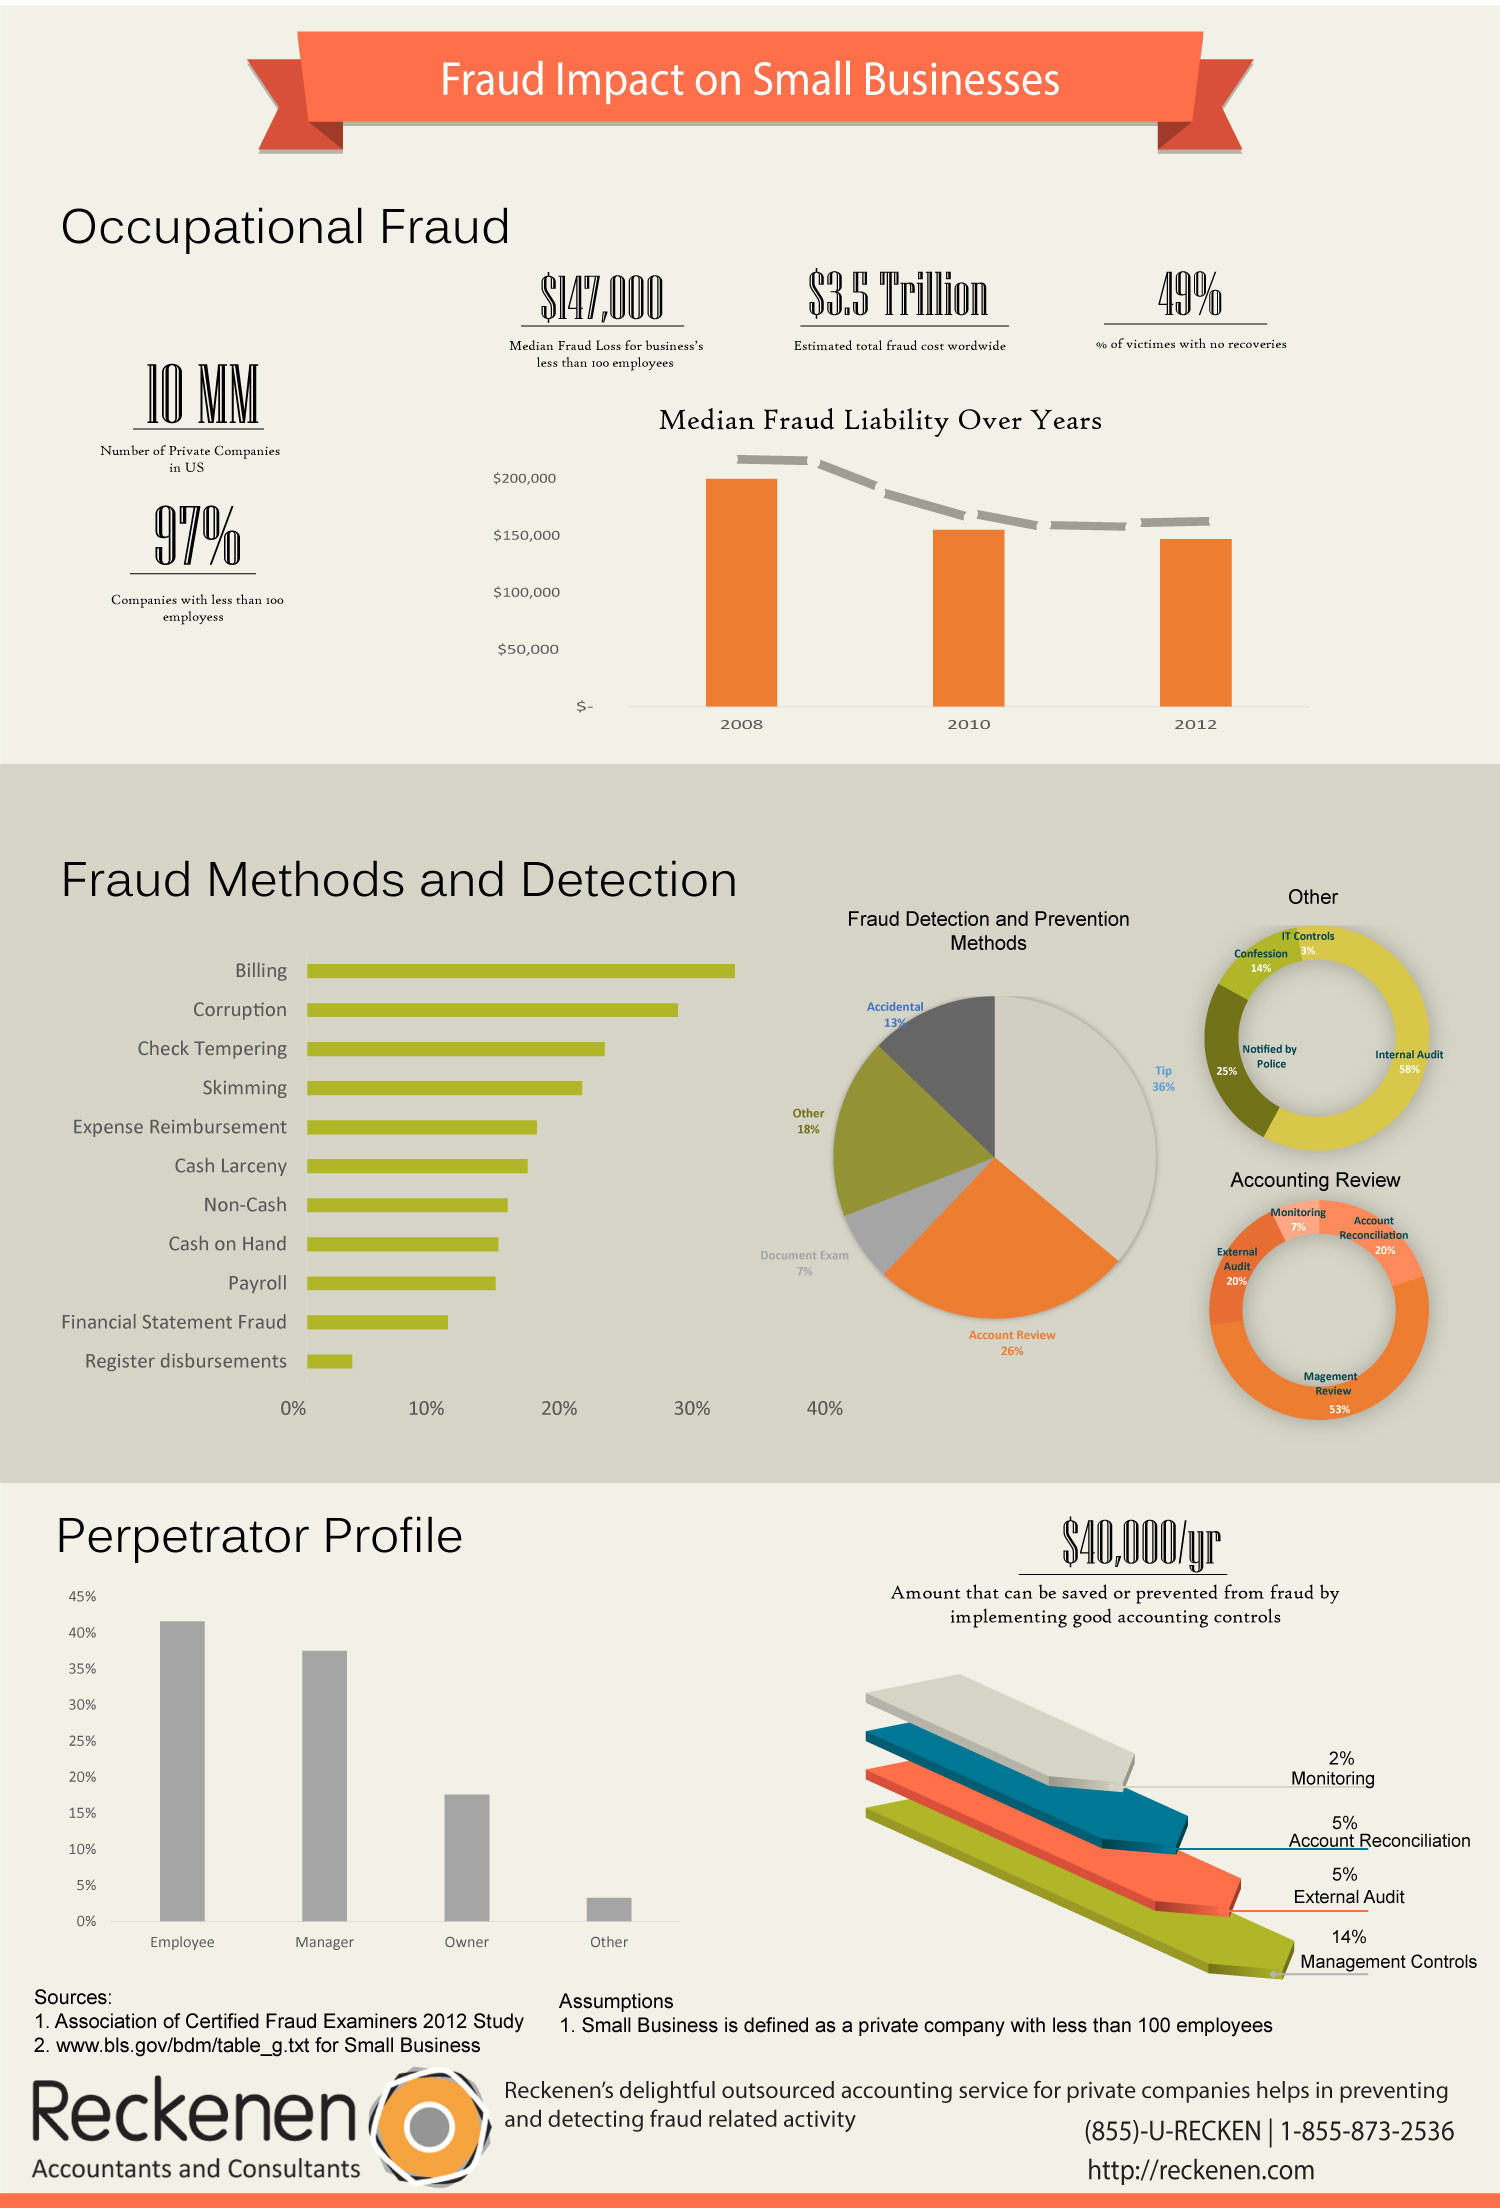 Fraud Impact on Small Business Infographic